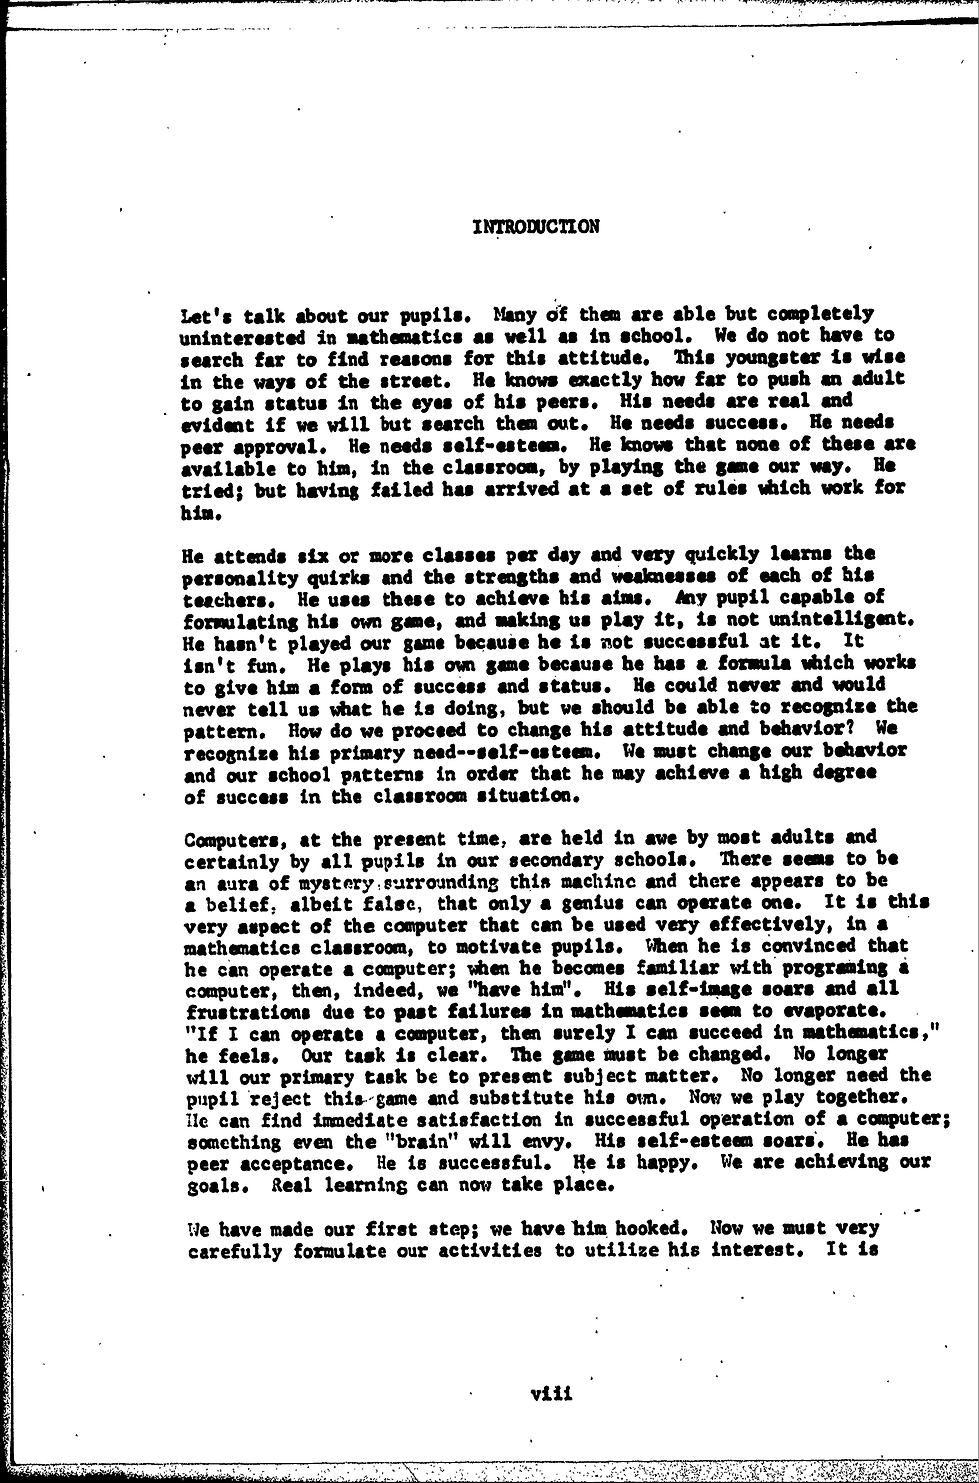 WYLE Instruction_Page_010_Image_0001.tif